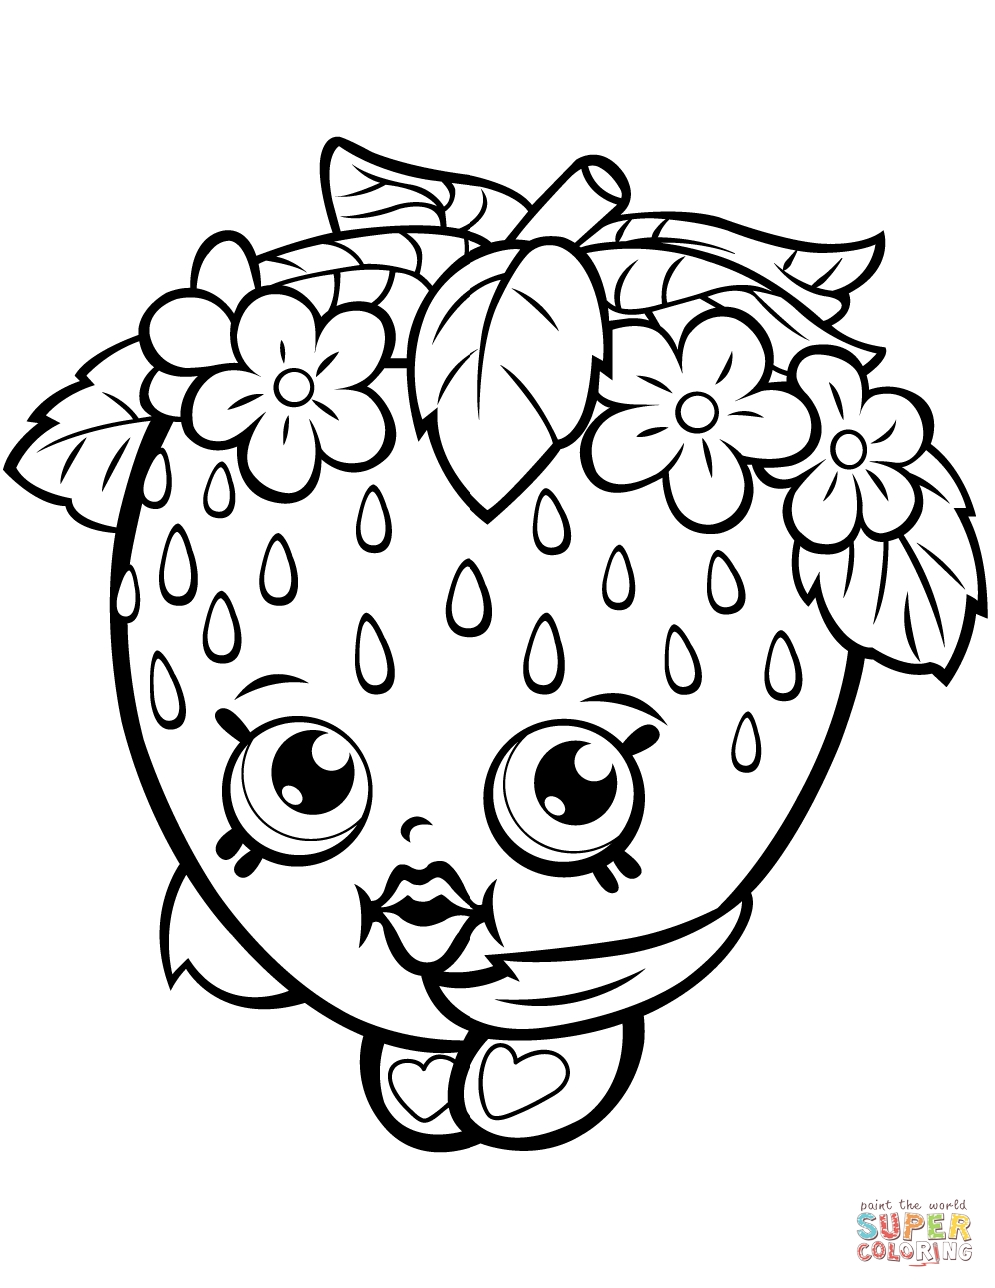 995x1288 Free Strawberry Shopkins Coloring Page Printable